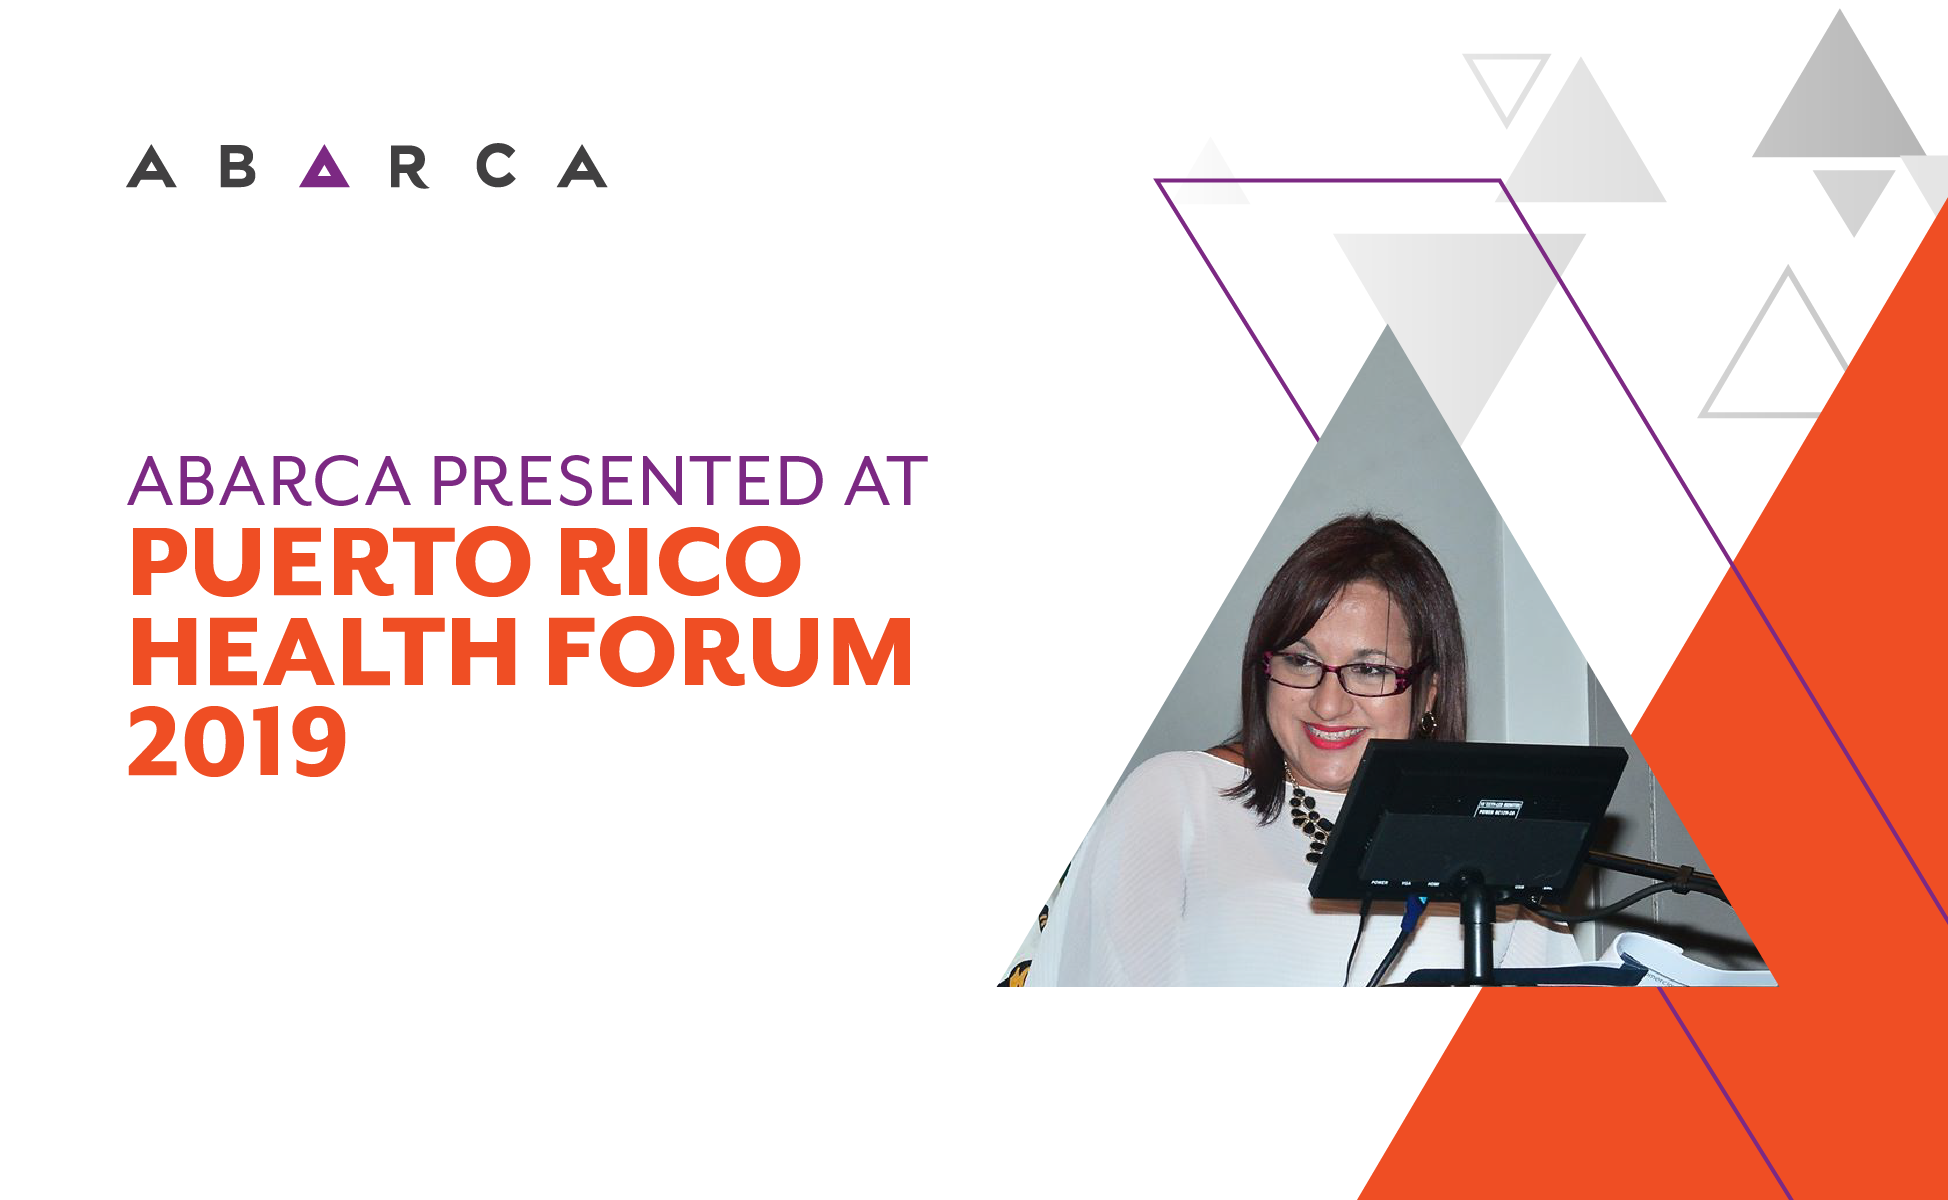 Abarca presented on Public Health Policy Trends at the 2019 Puerto Rico Health Forum